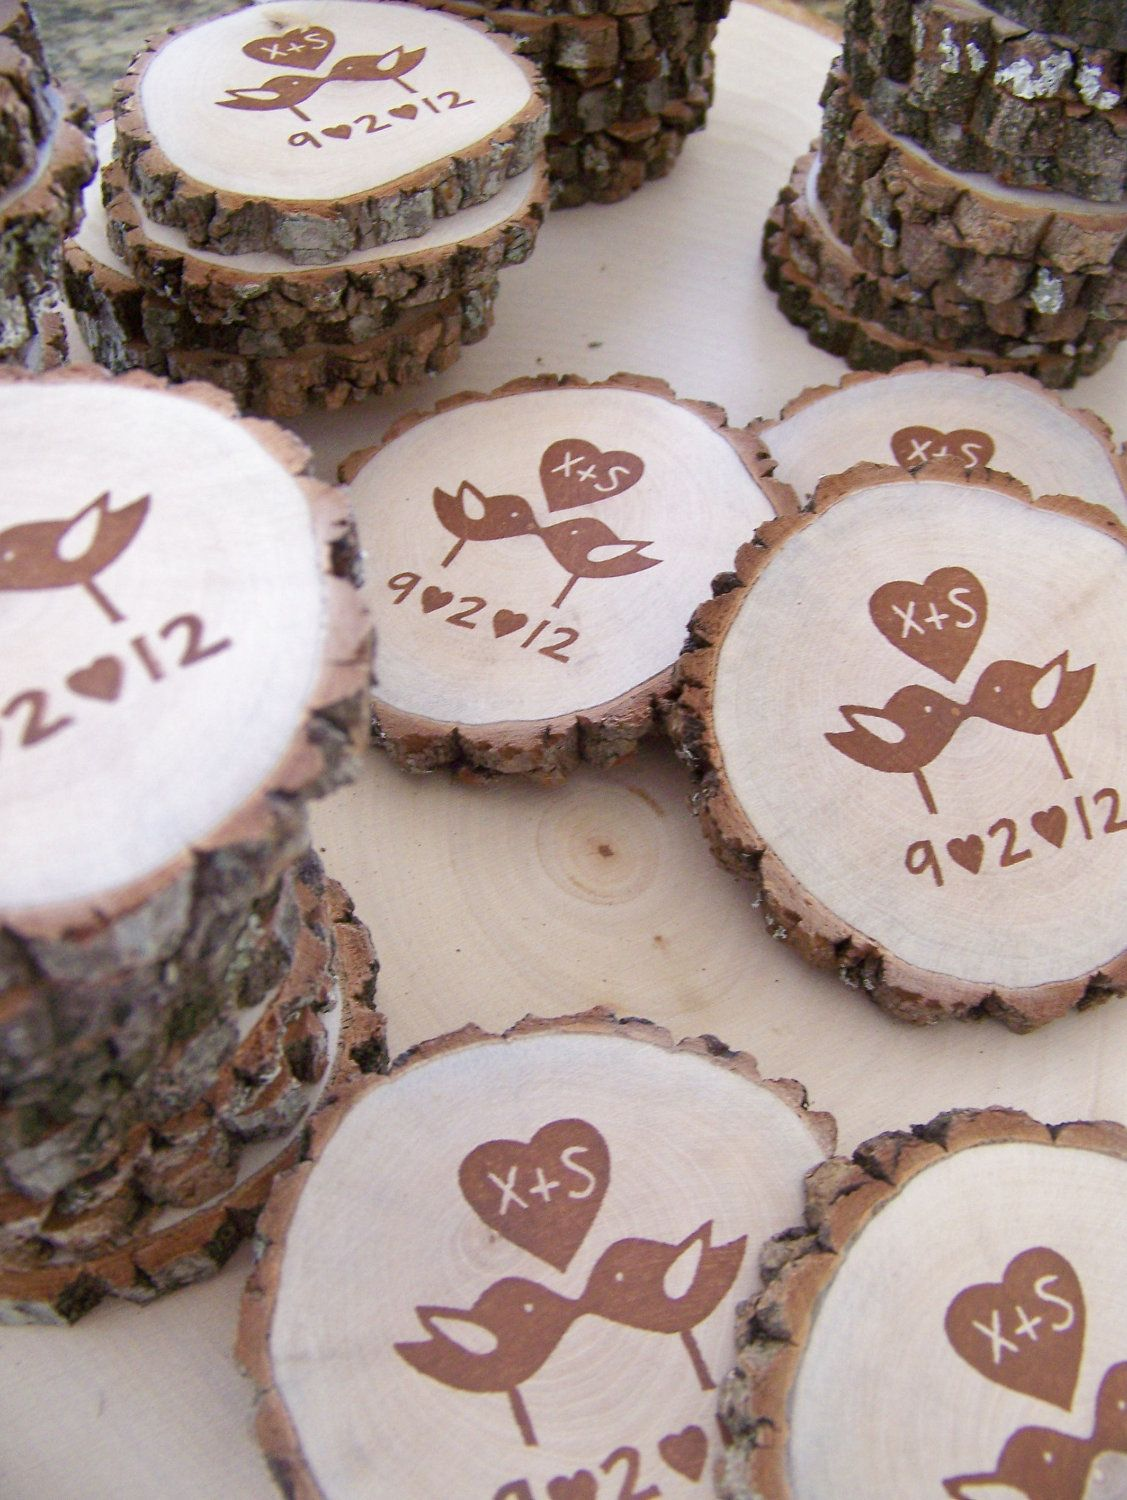 Save The Date Magnets!! Perfect for our theme <3 picking up the slices to do this on the weekend!